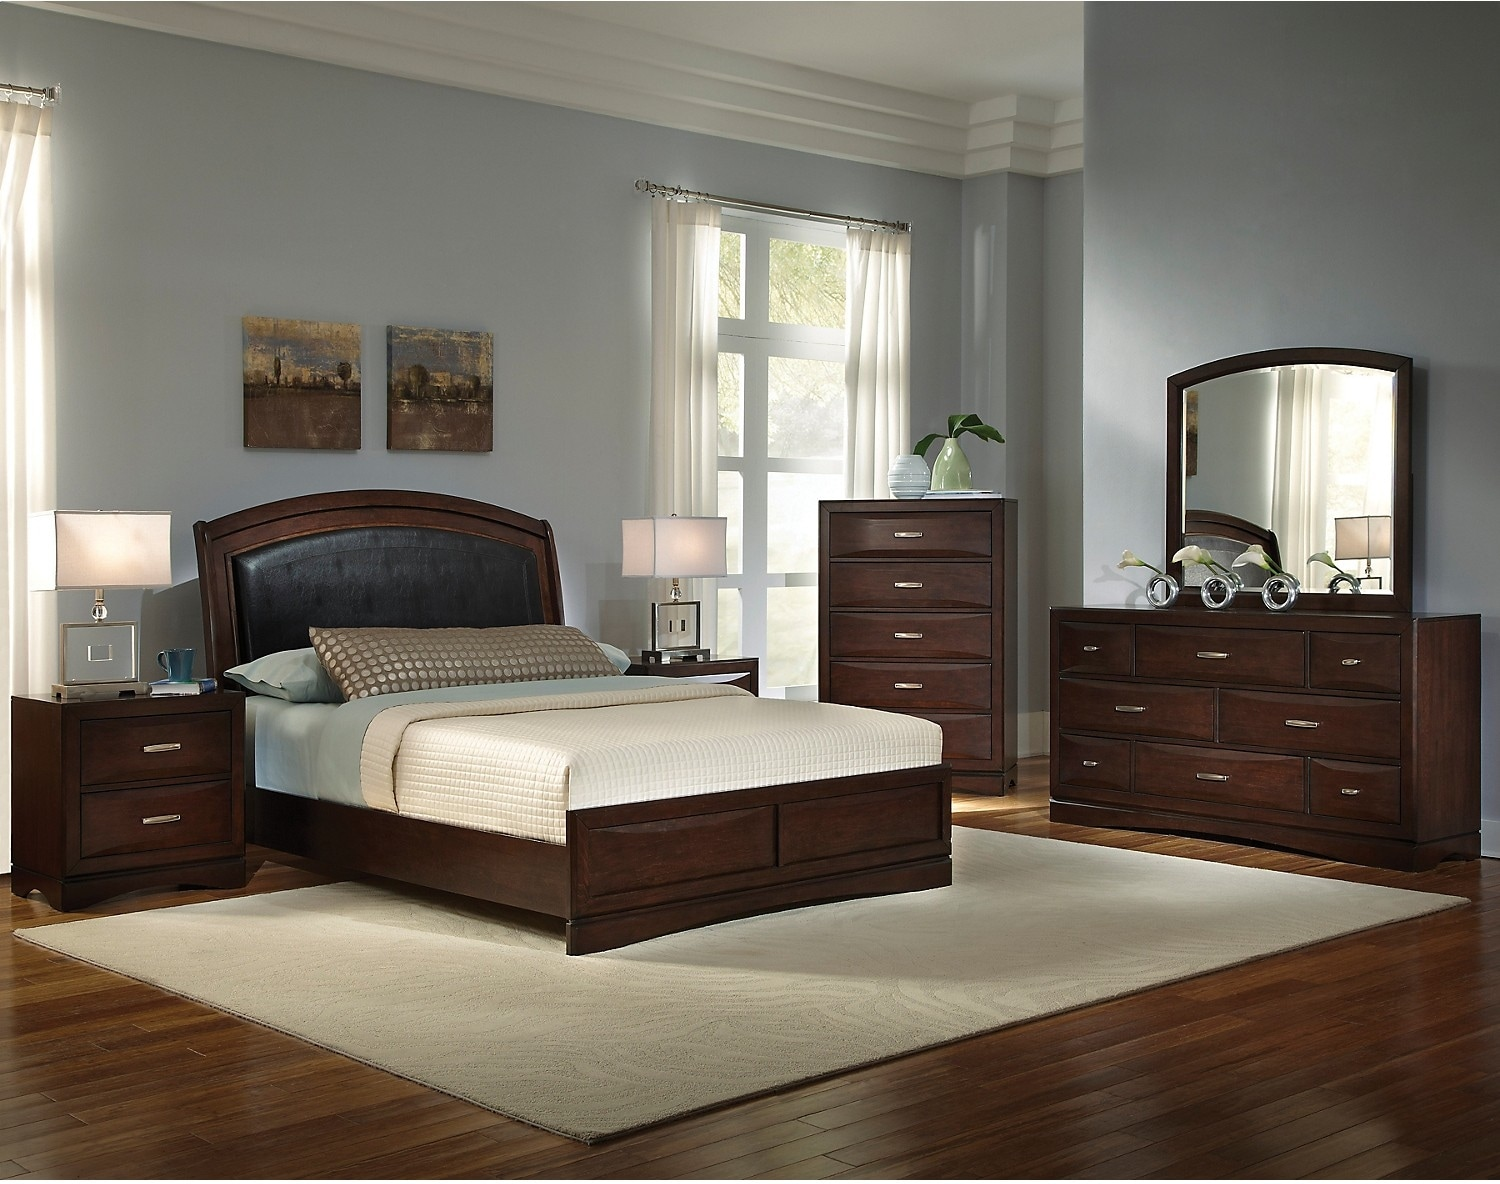 Http Www Thebrick Com Product Package Furniture Bedroom Bedroom Packages Beverly 8 Piece Queen Bedroom Set 1646446 1644406